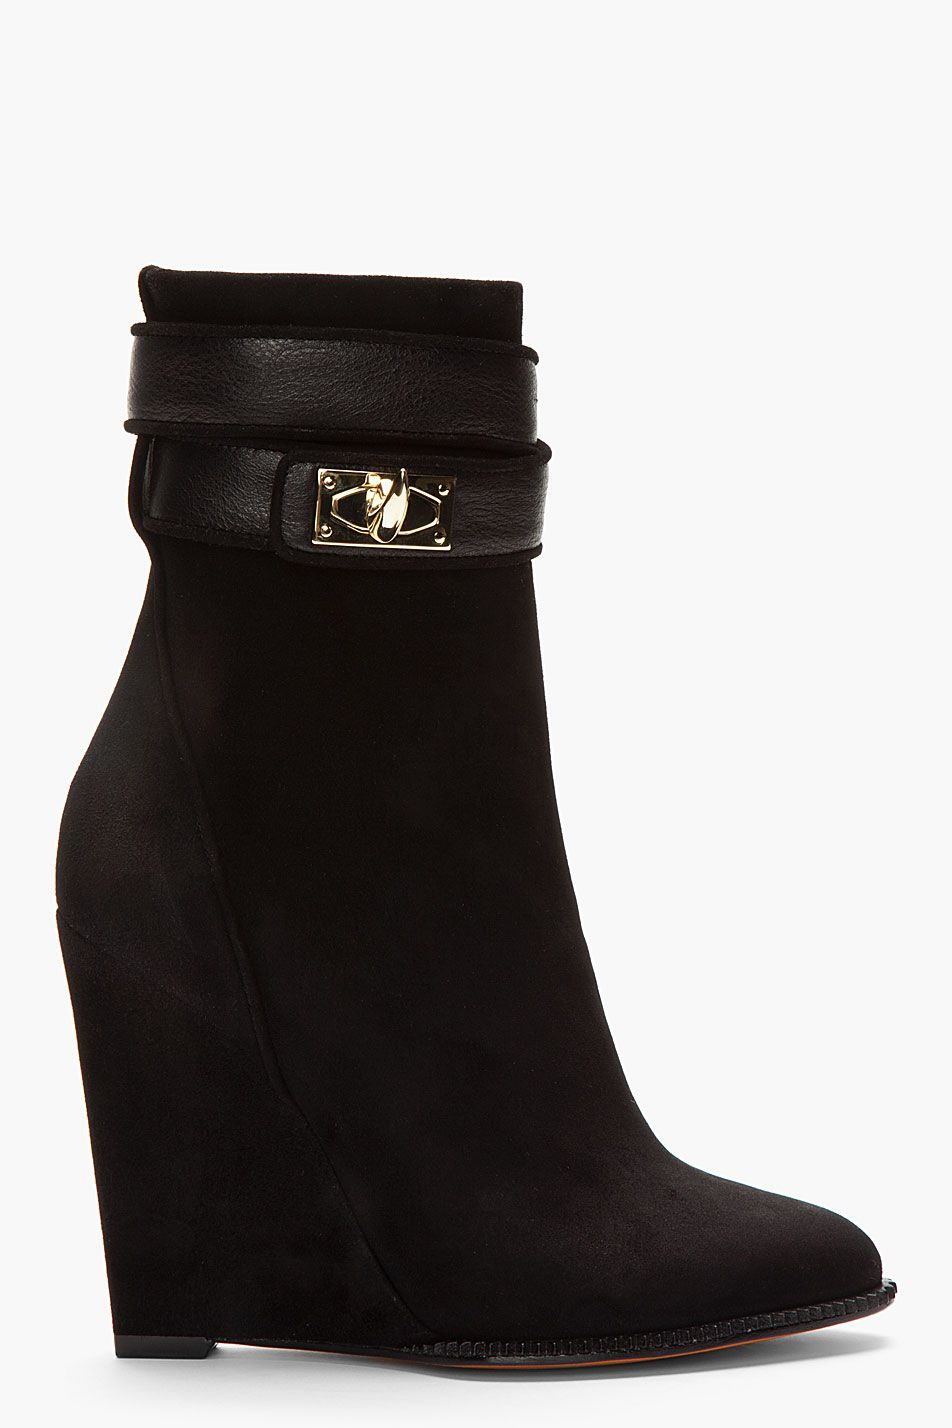 Shark Ankle Givenchy Black Invierno Suede Lock Boots Otoño Un8E8rf